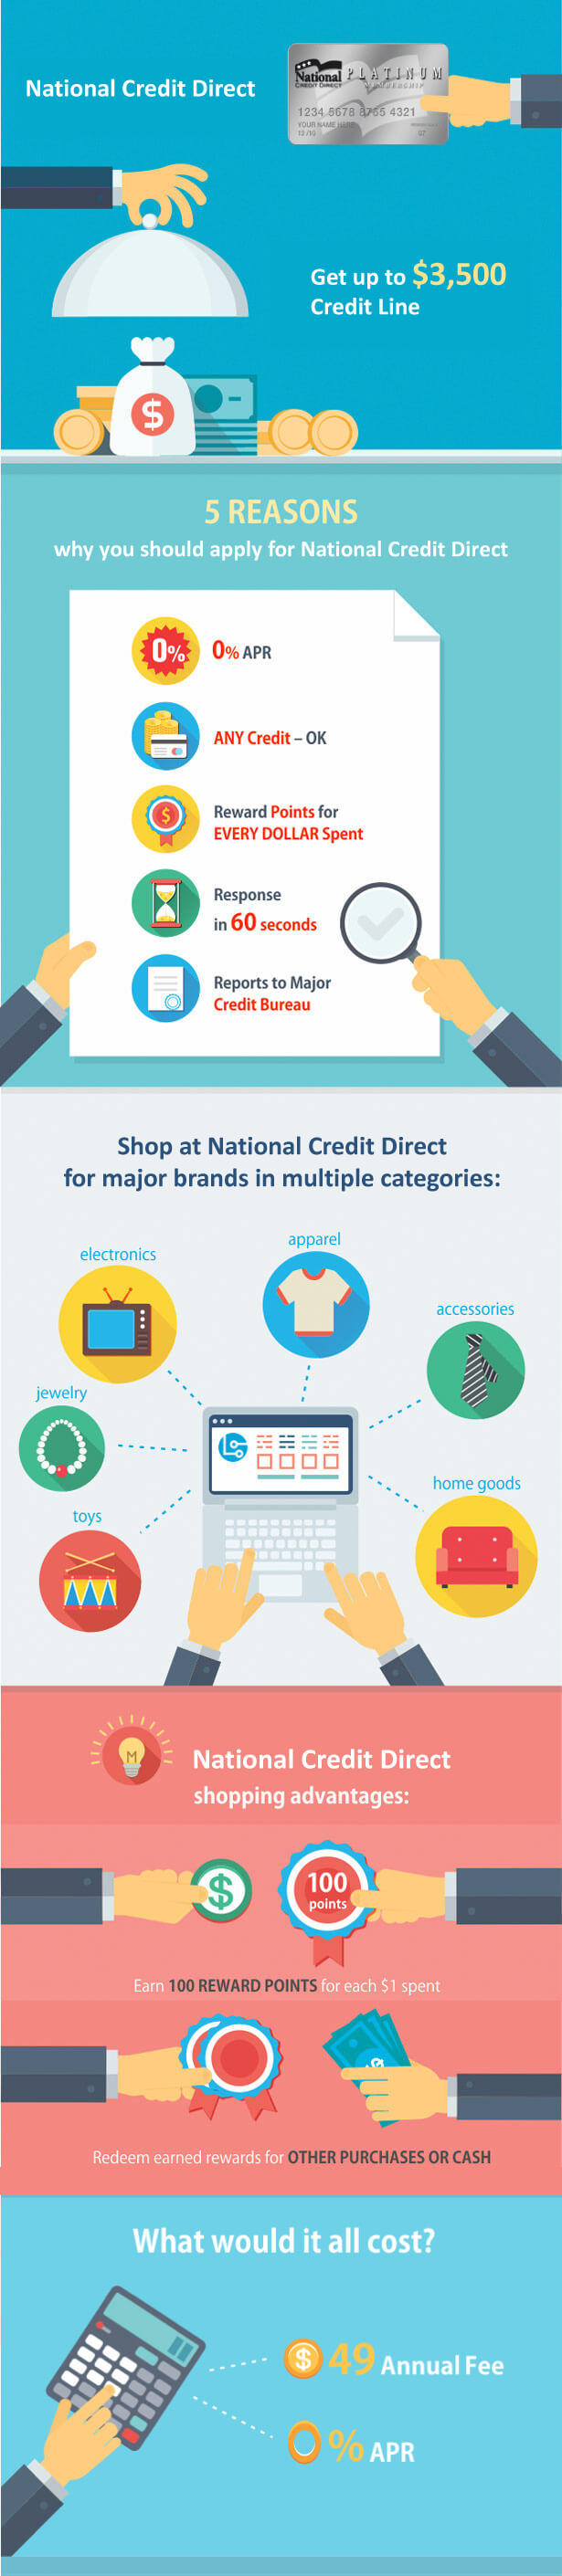 National-Credit-Direct